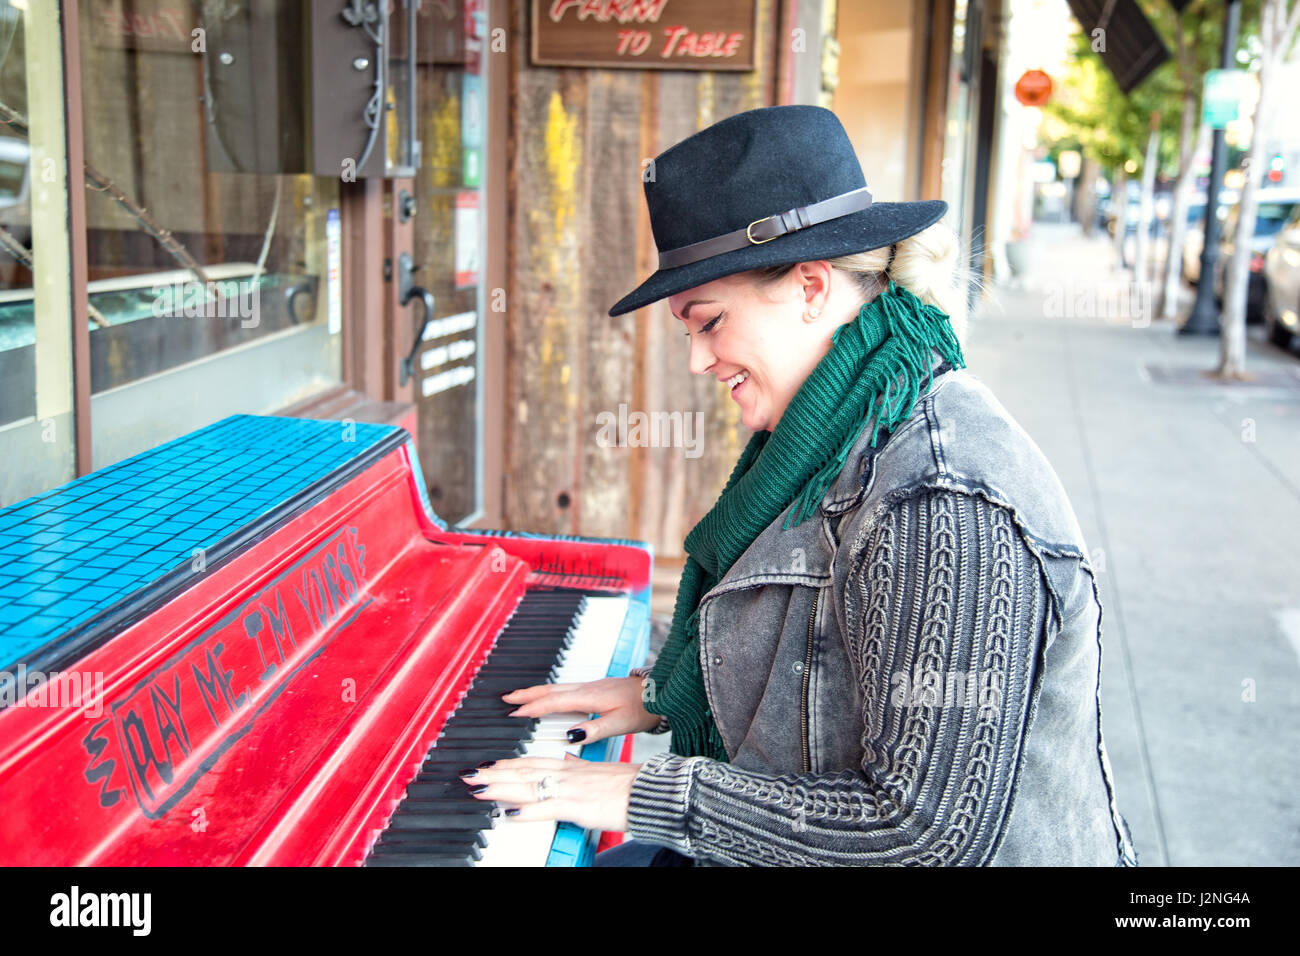 A fashionable 30-something woman plays piano on a city street. - Stock Image